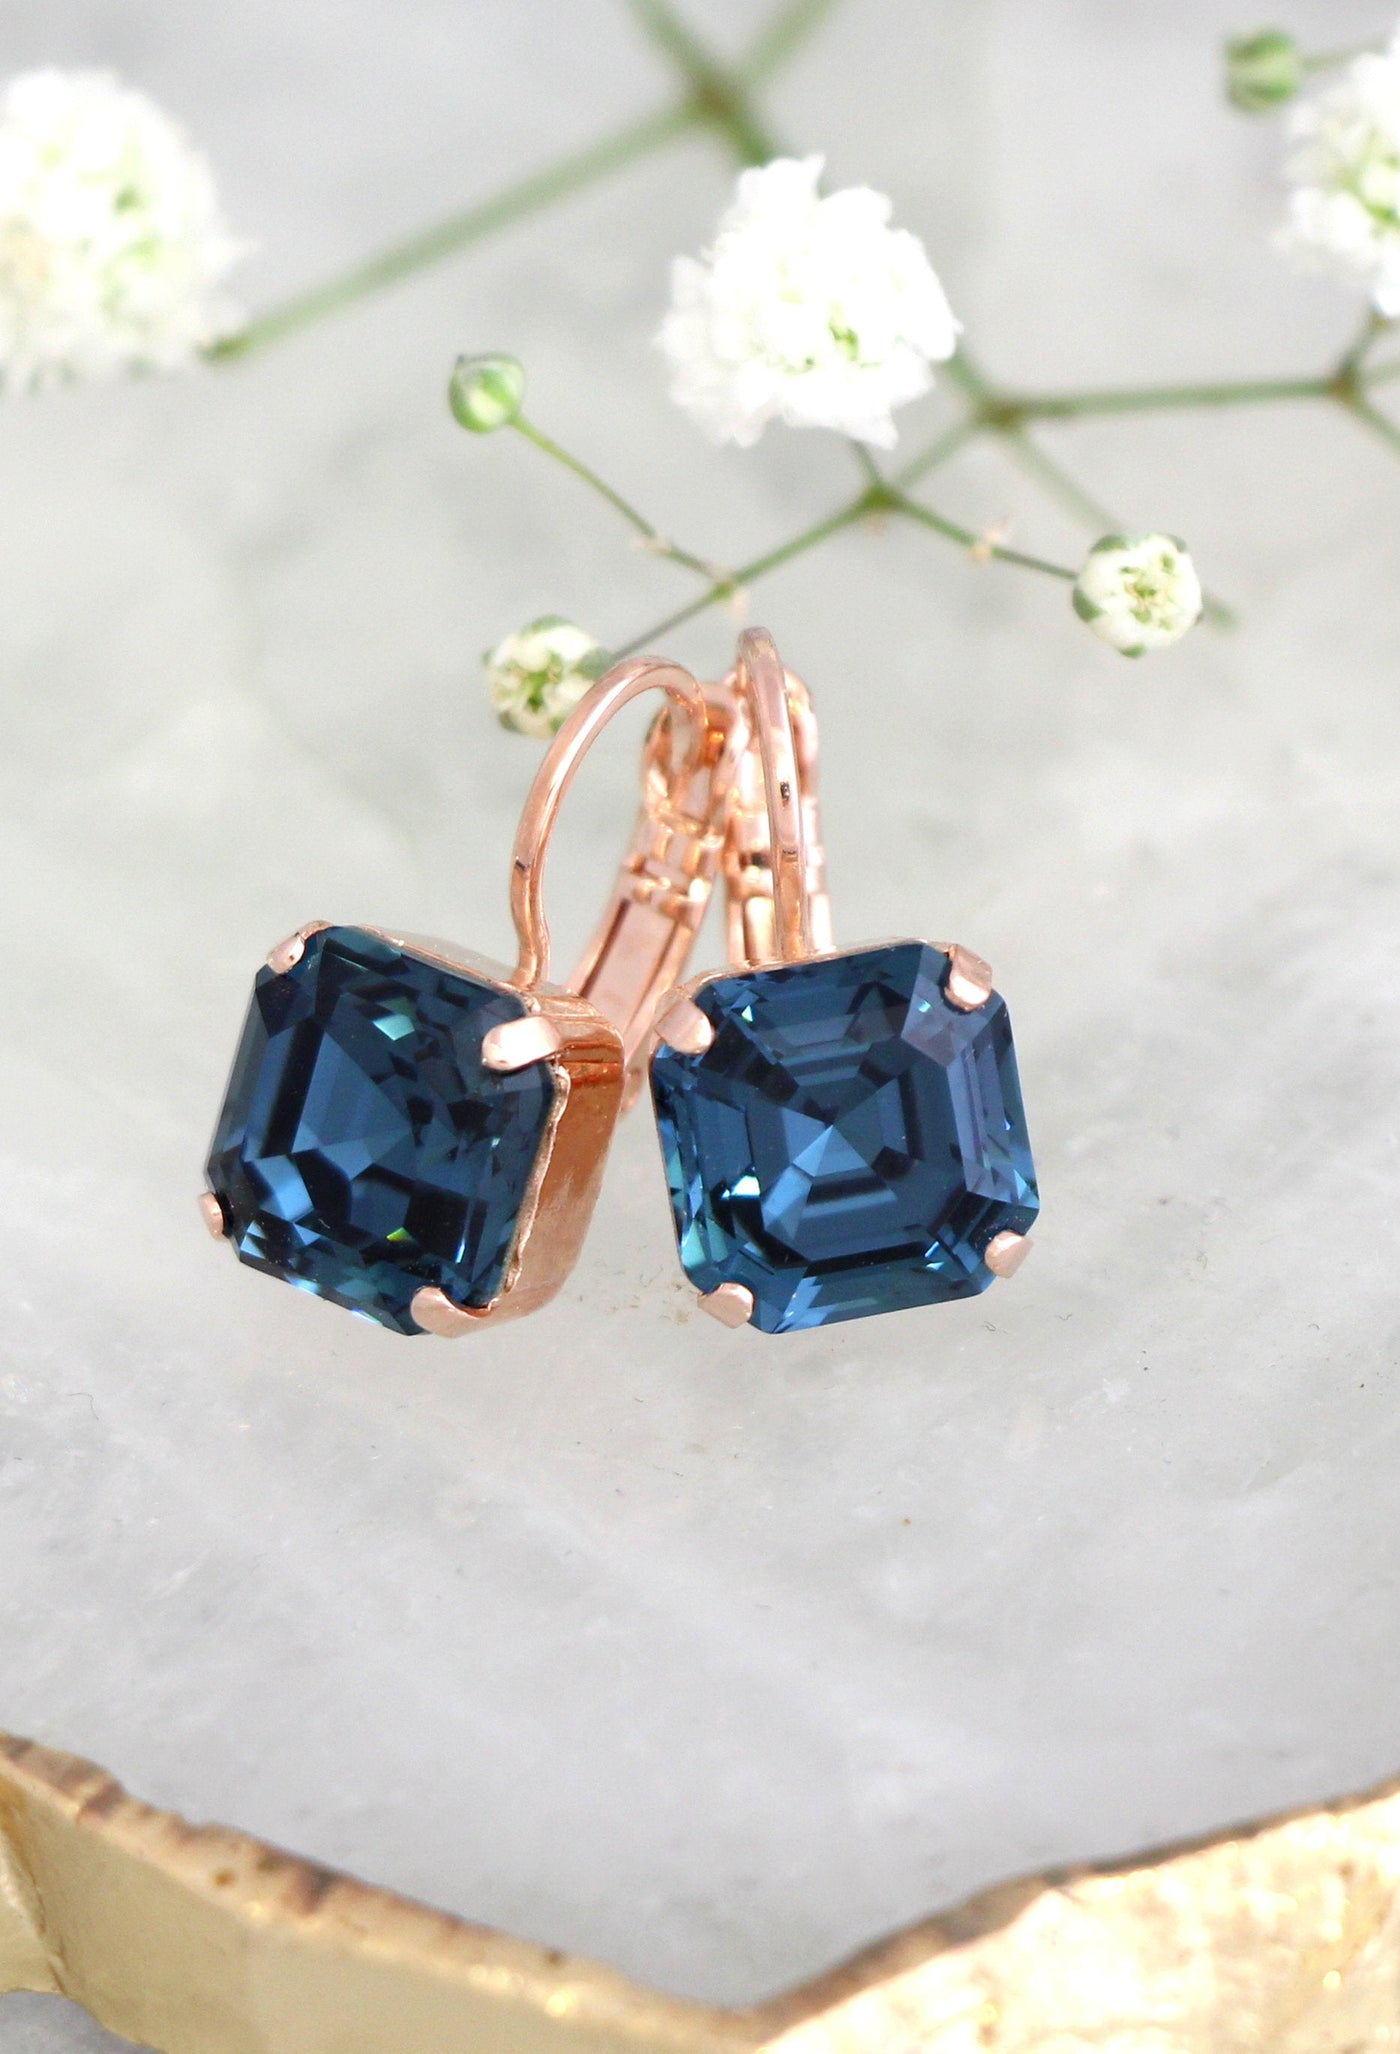 Blue Navy Crystal Drop Earrings, Princess Cut Navy Blue Bridal Droplet Earrings, Blue Swarovski Earrings Drop Earrings, Bridesmaids Earrings